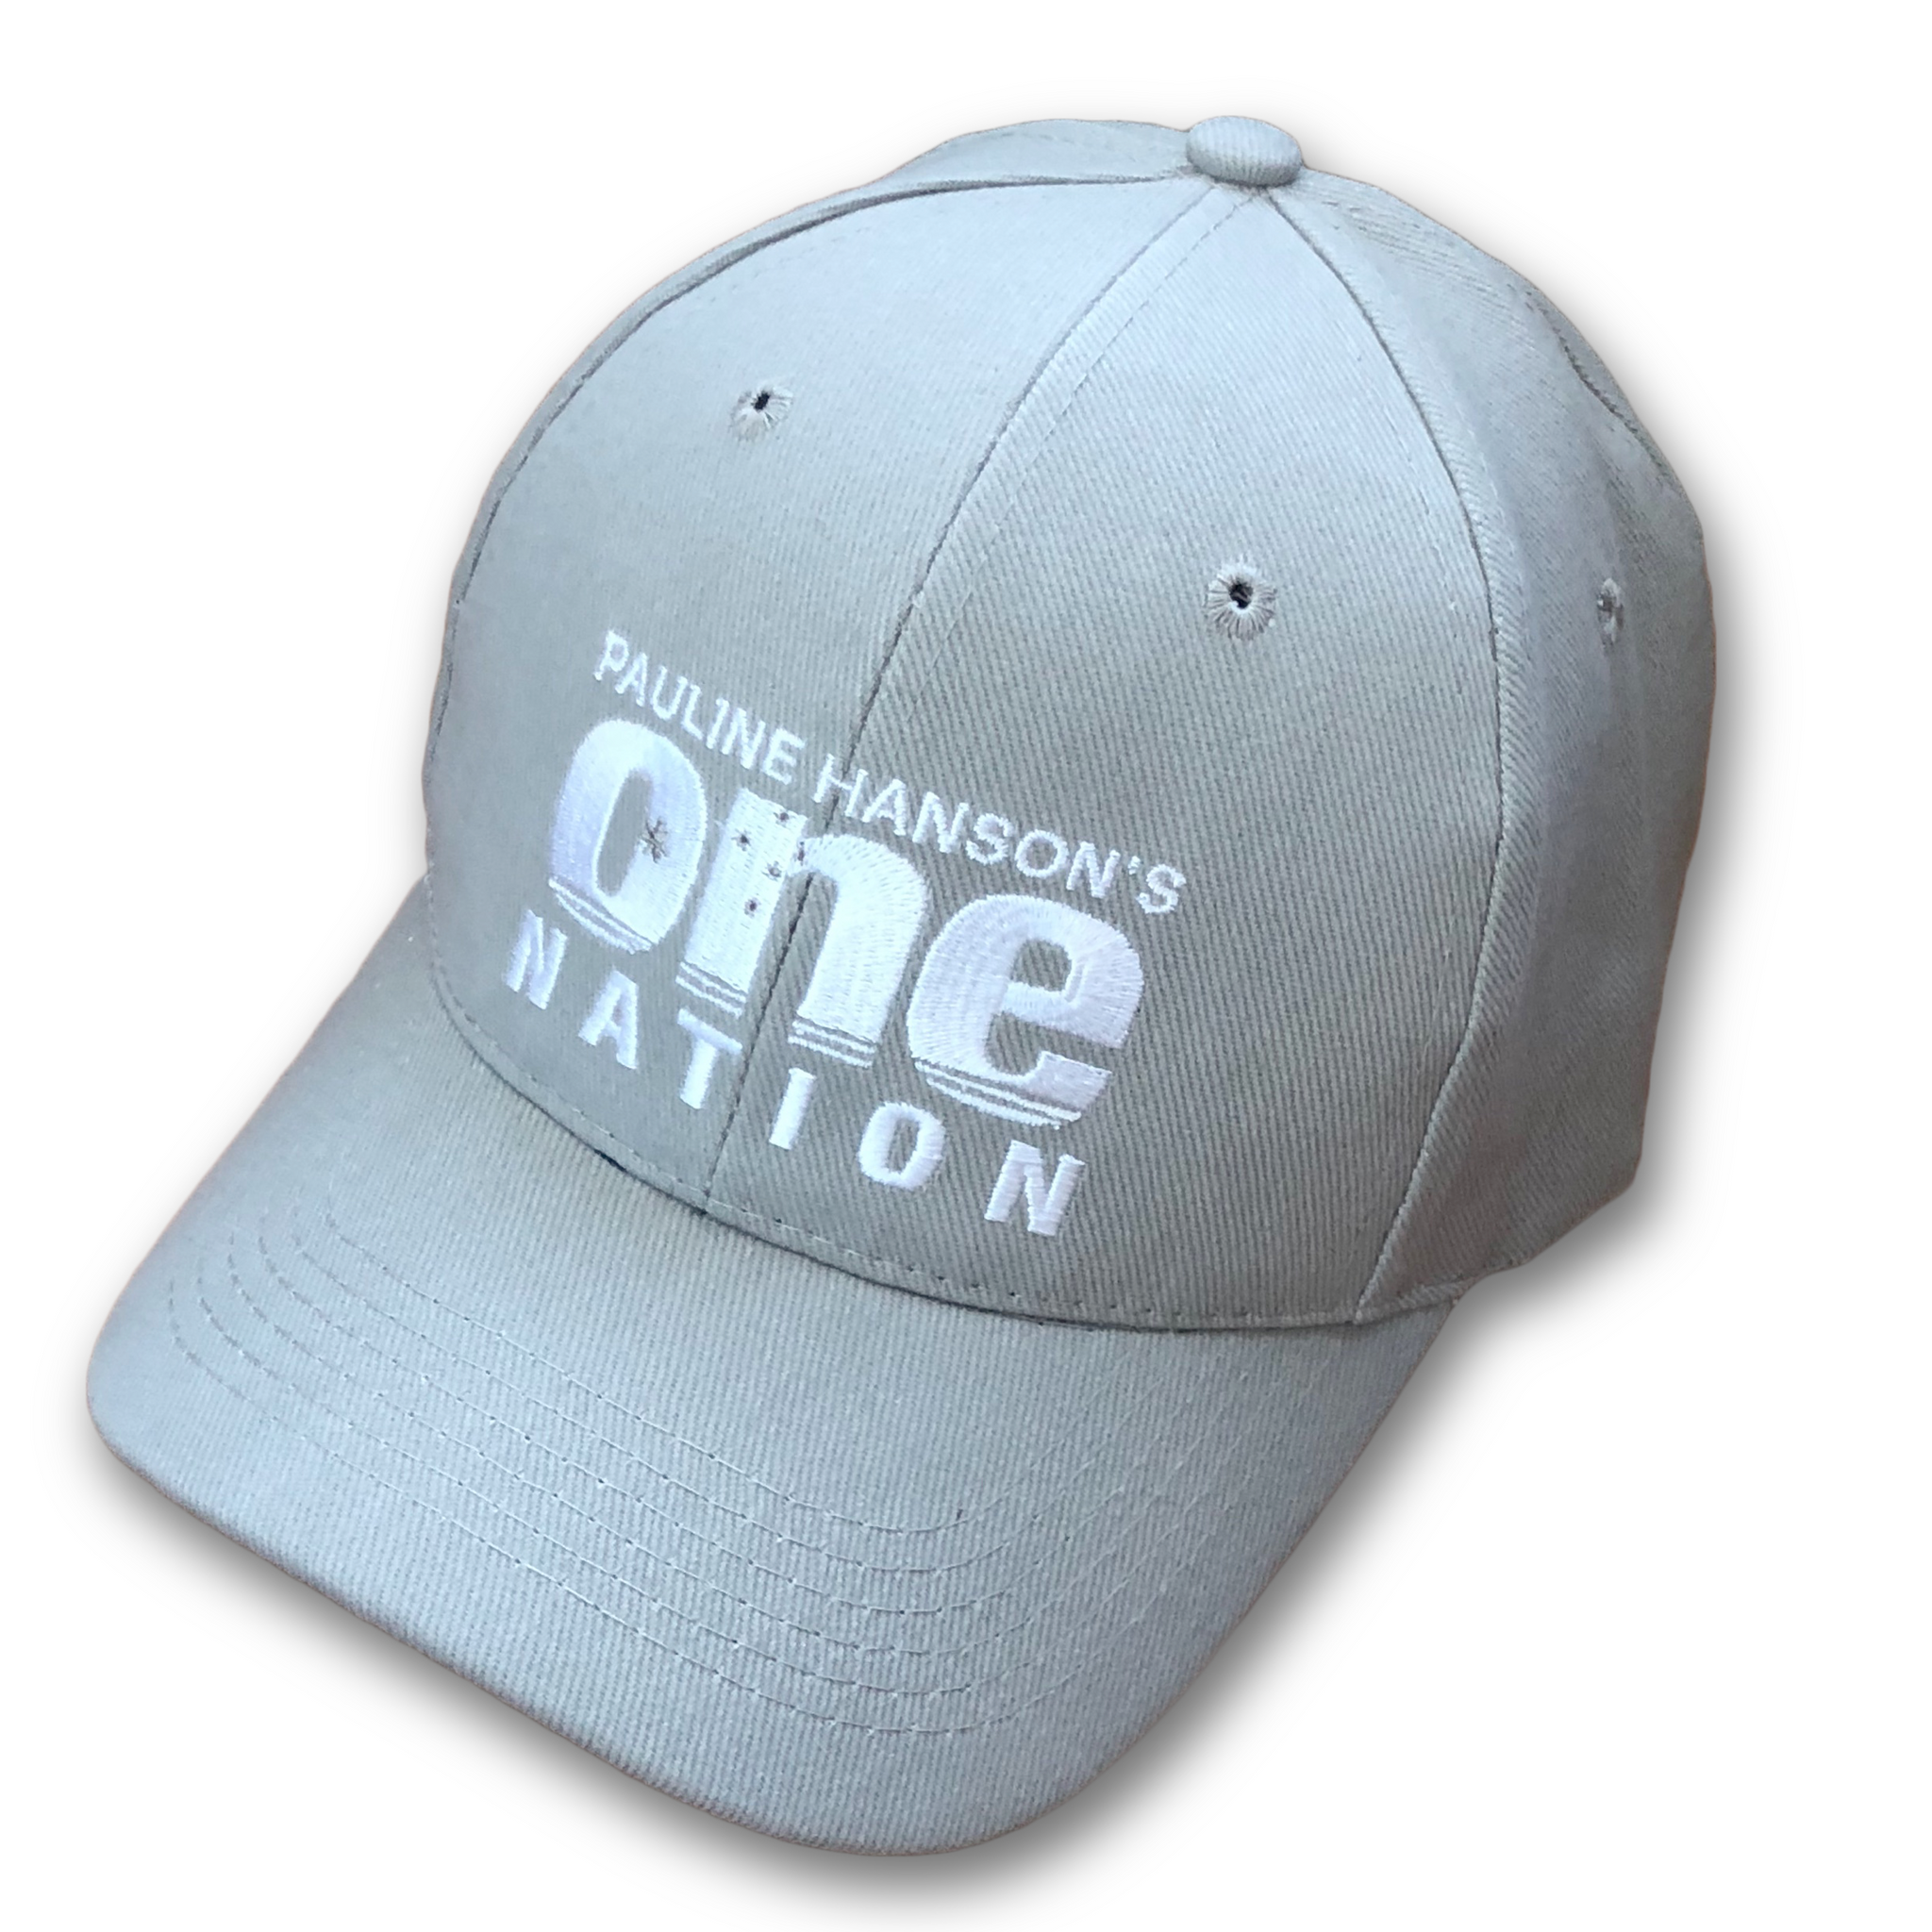 Pauline Hanson's One Nation Supporter Cap